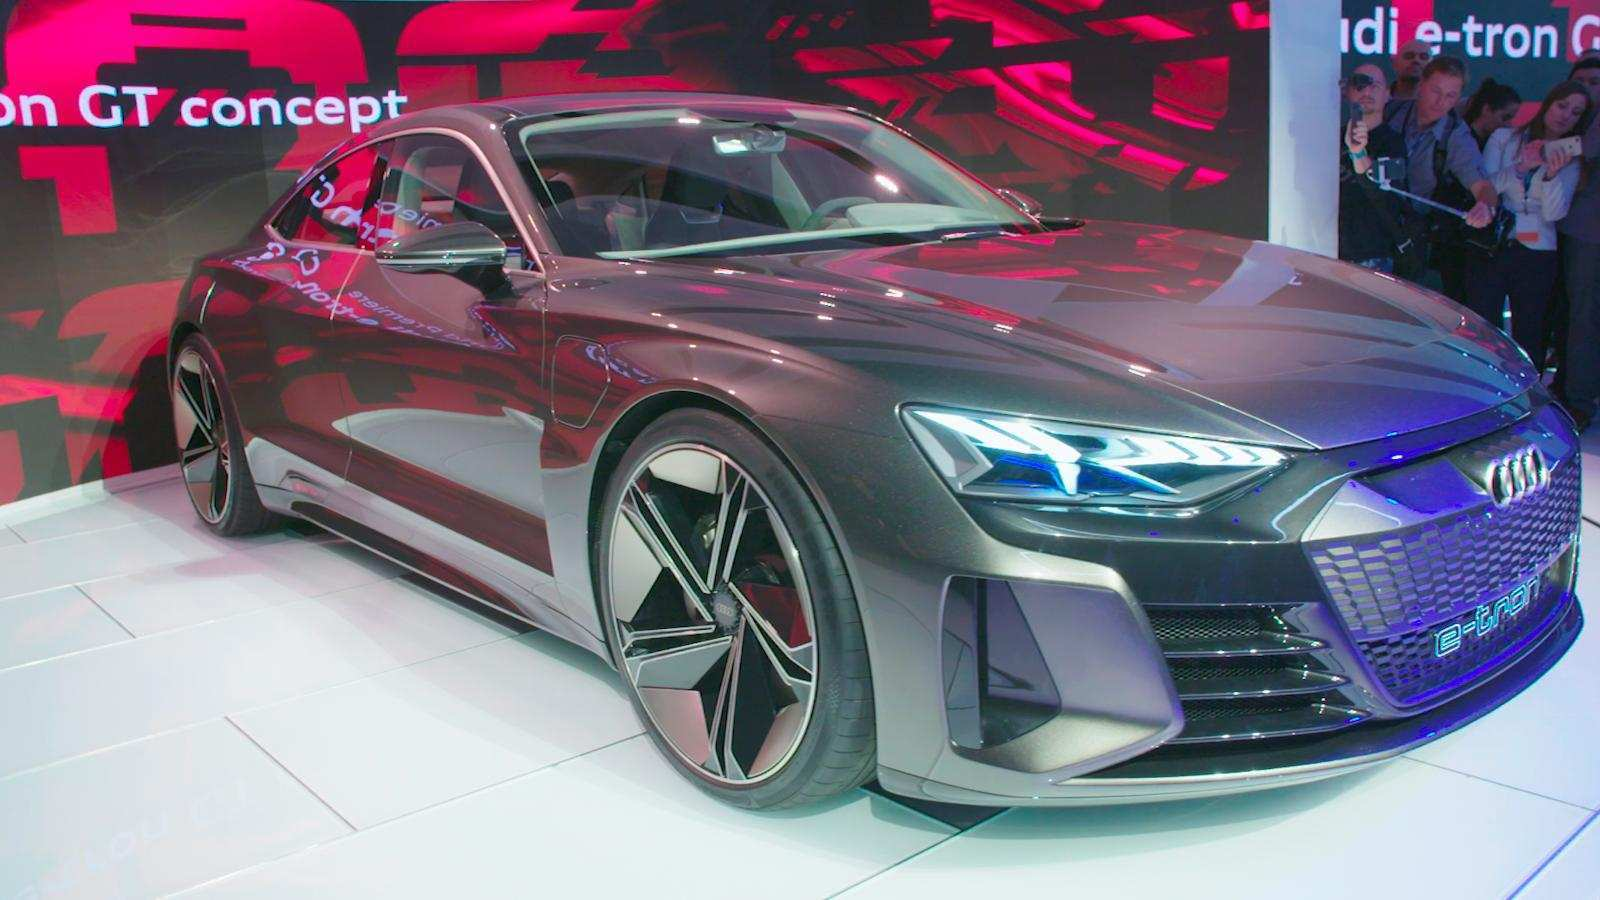 43 Gallery of New Fastest Audi 2019 Concept Wallpaper for New Fastest Audi 2019 Concept